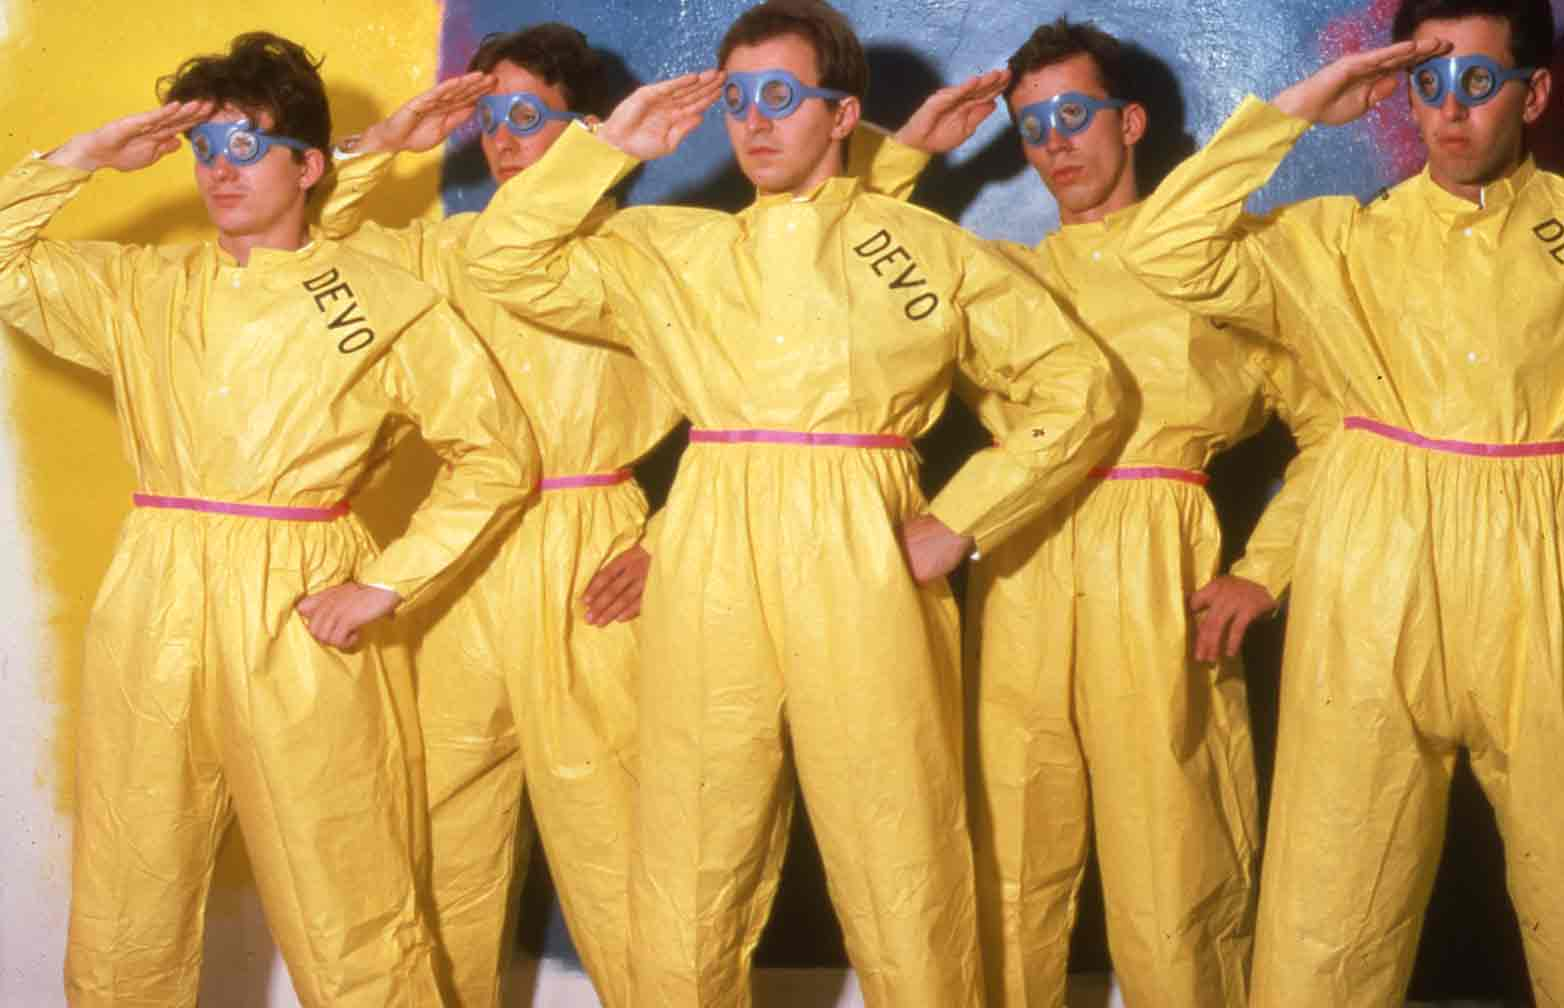 Through Being Cool The Music Videos Of Mark Mothersbaugh And Devo